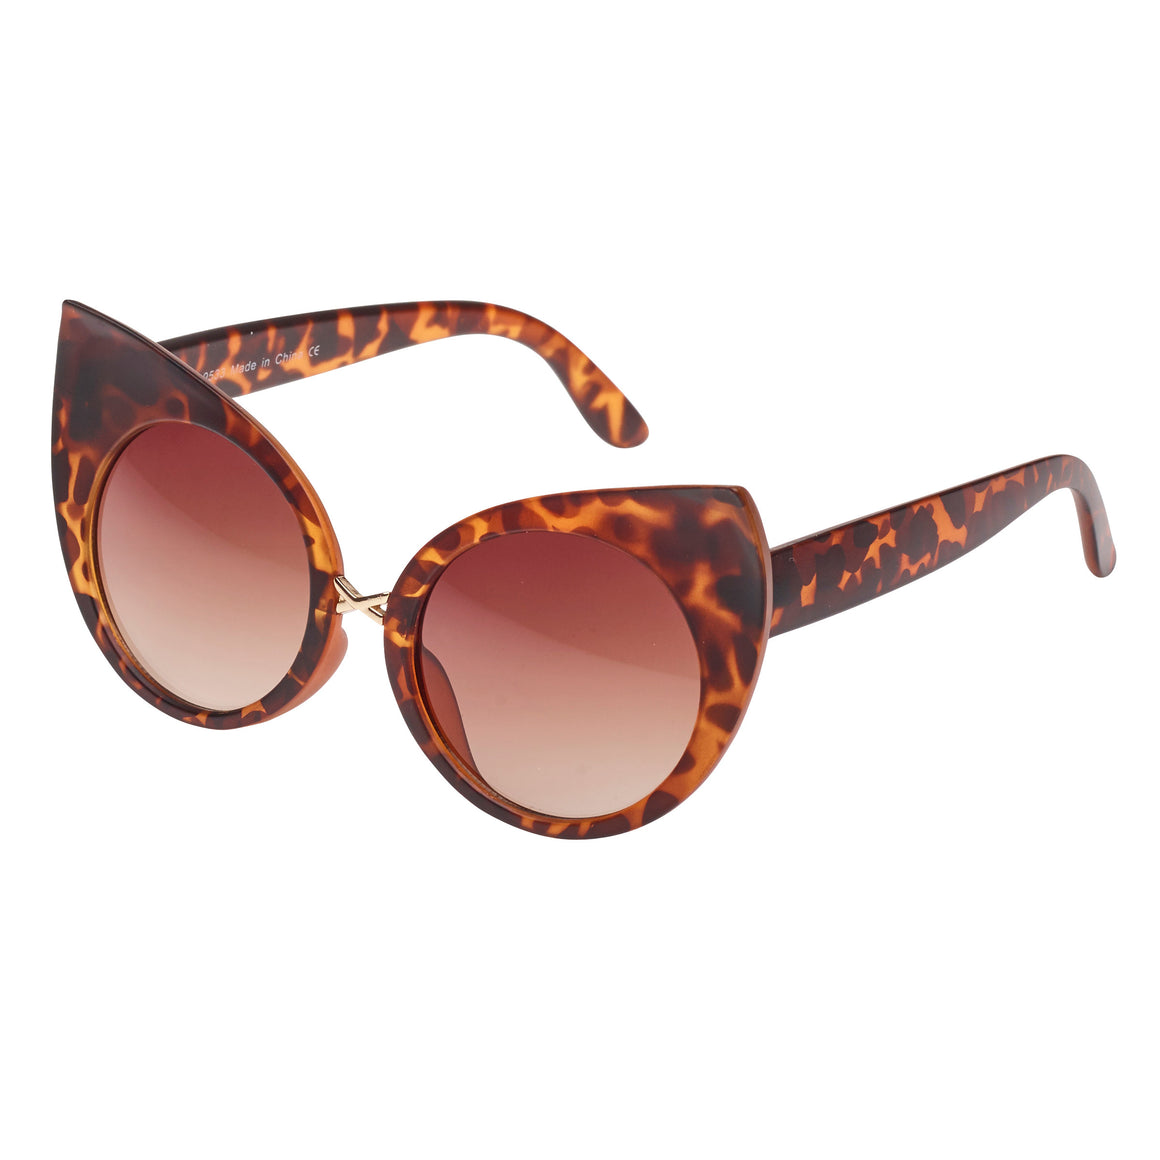 Tortoiseshell Vintage Retro Sunglasses - Pretty Kitty Fashion